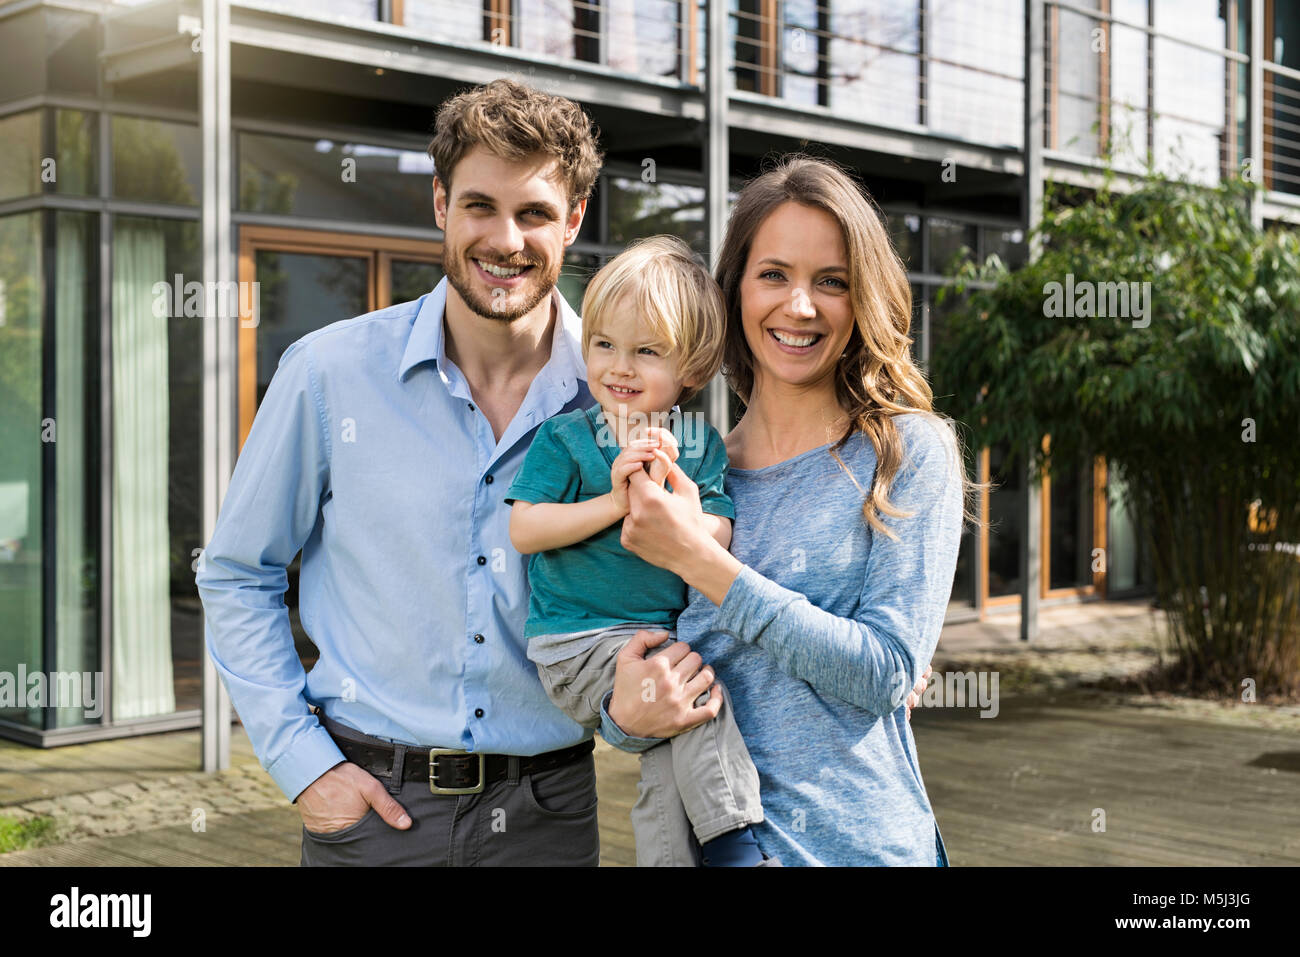 Portrait of smiling parents with son in front of their home - Stock Image